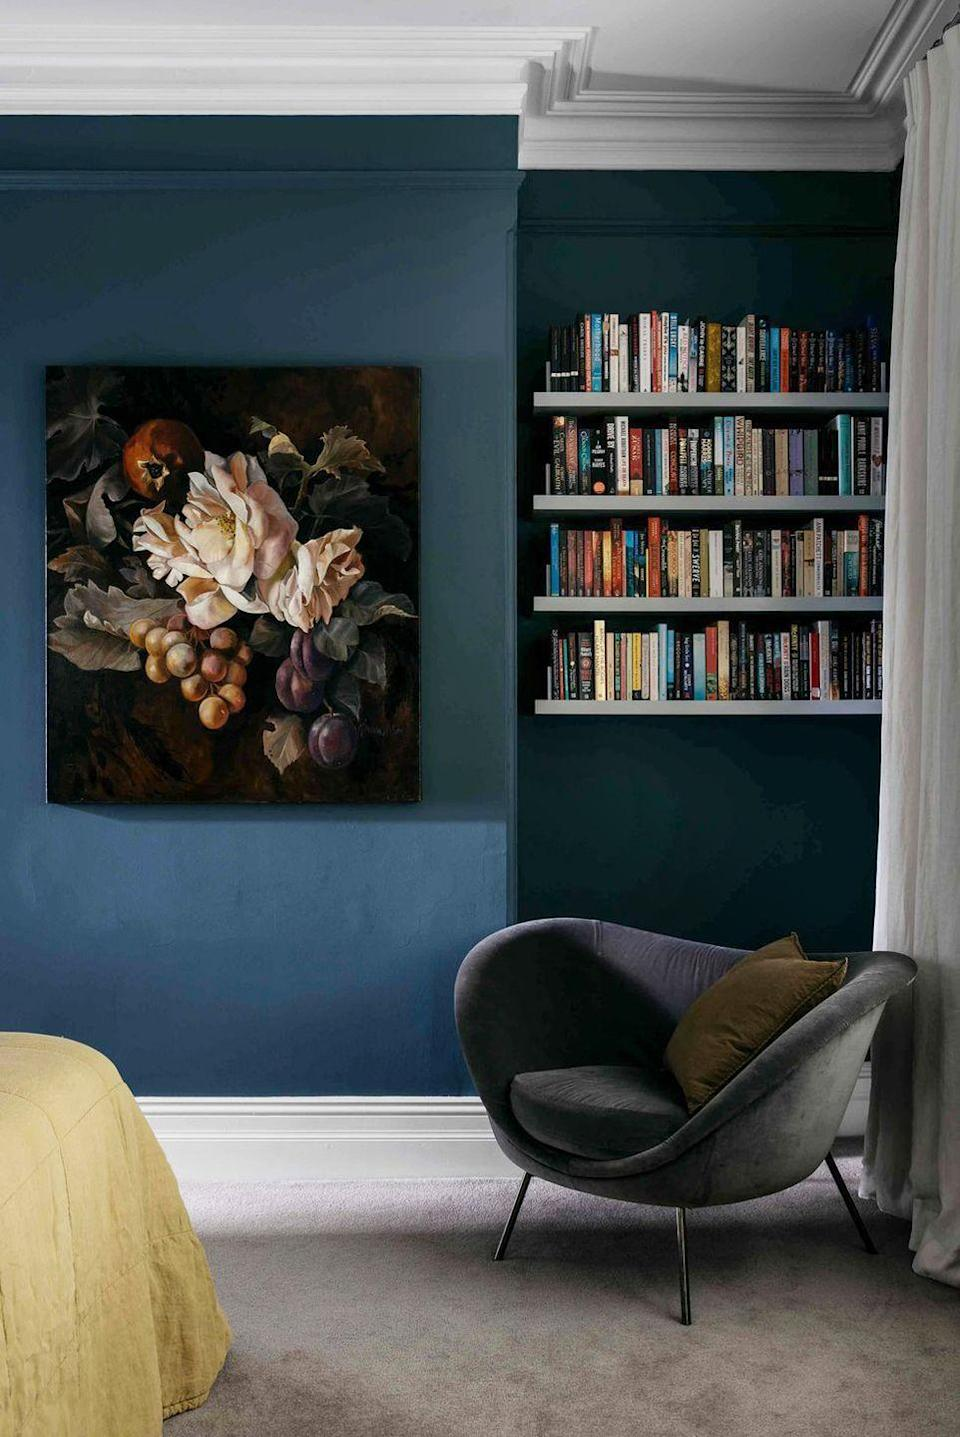 """<p>Create a cozy corner reading nook in your bedroom with a dark paint color, plush fabrics, emotive artwork, and of course, easy-to-reach books. In this bedroom designed by <a href=""""http://arentpyke.com/"""" rel=""""nofollow noopener"""" target=""""_blank"""" data-ylk=""""slk:Arent & Pyke"""" class=""""link rapid-noclick-resp"""">Arent & Pyke</a>, the rows of floating shelves provide a home for the occupant's collection. </p>"""